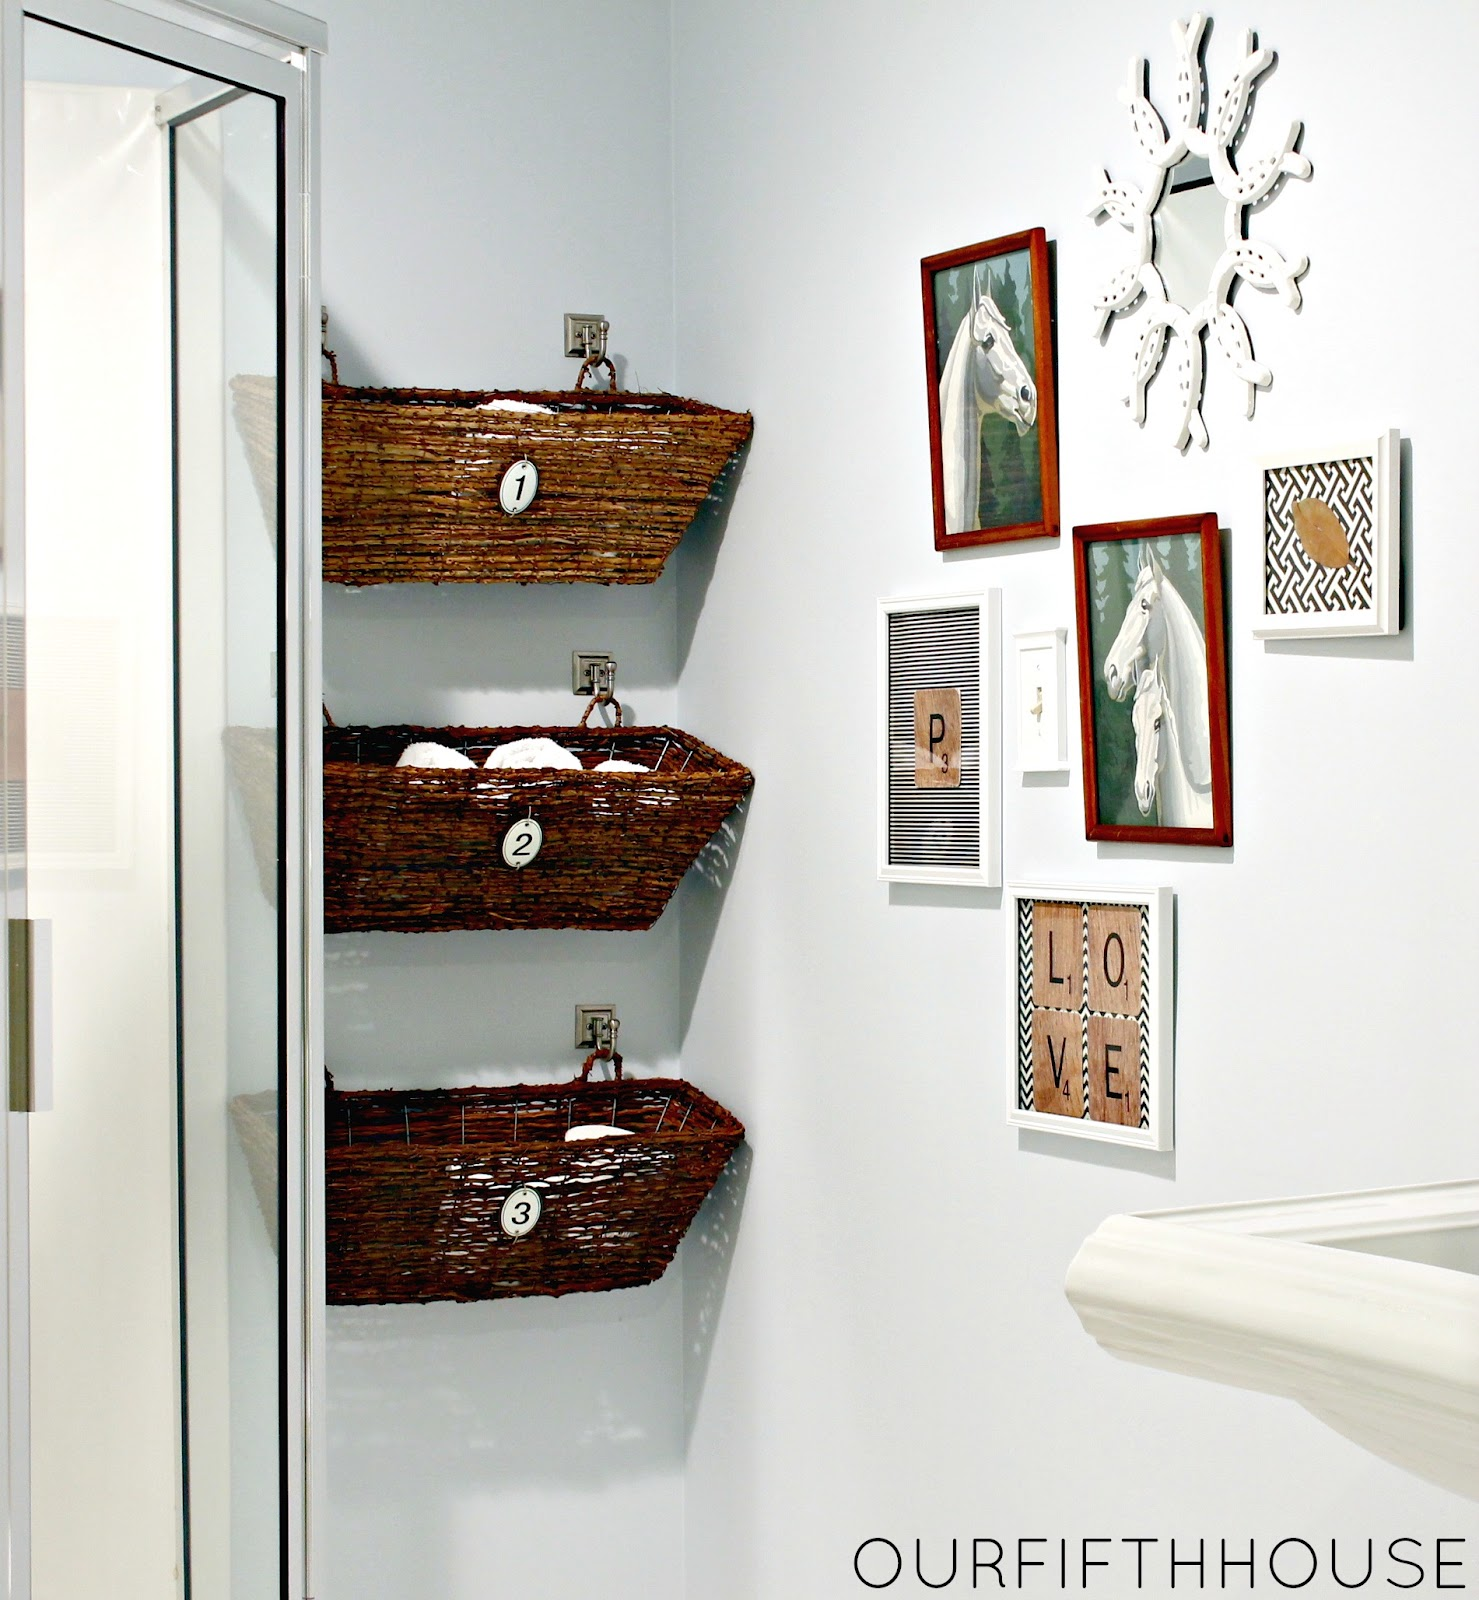 Small bathroom storage ideas - 12 Small Bathroom Storage Ideas Wall Storage Solutons And Shelves For Bathrooms